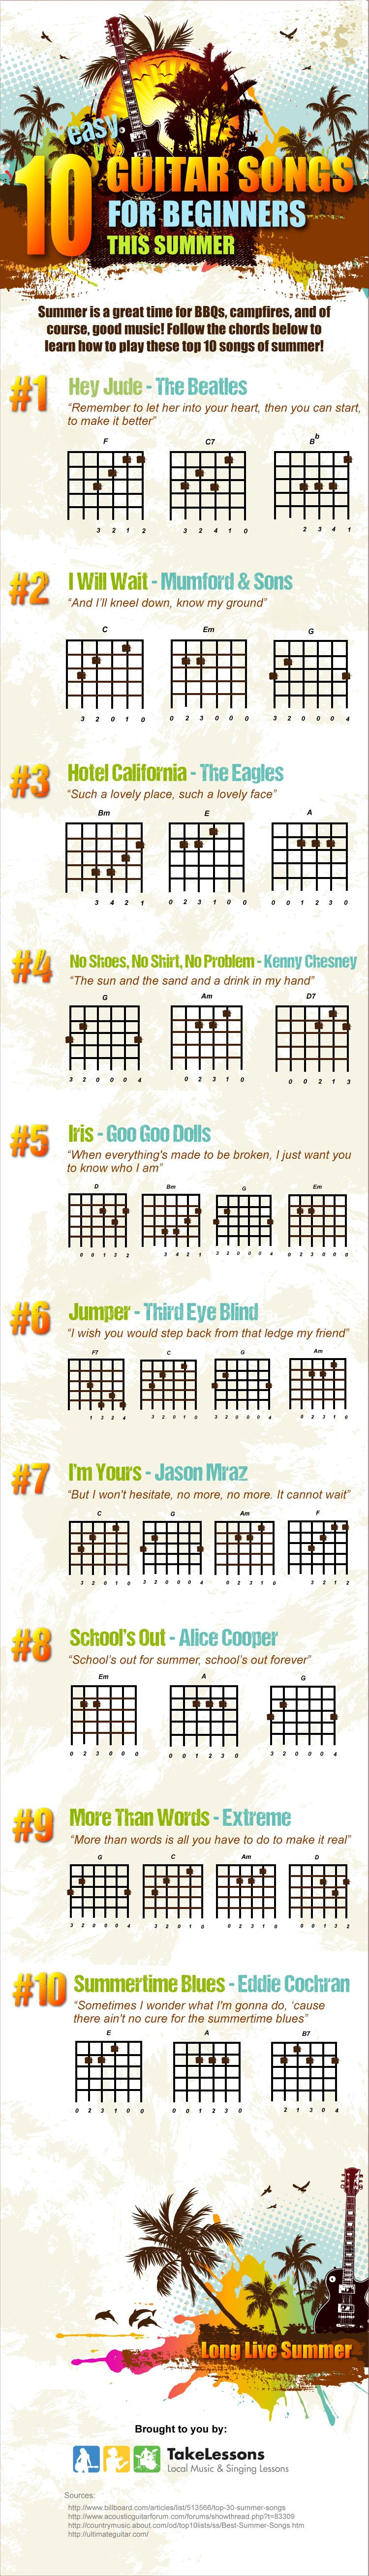 how to play acoustic guitar songs